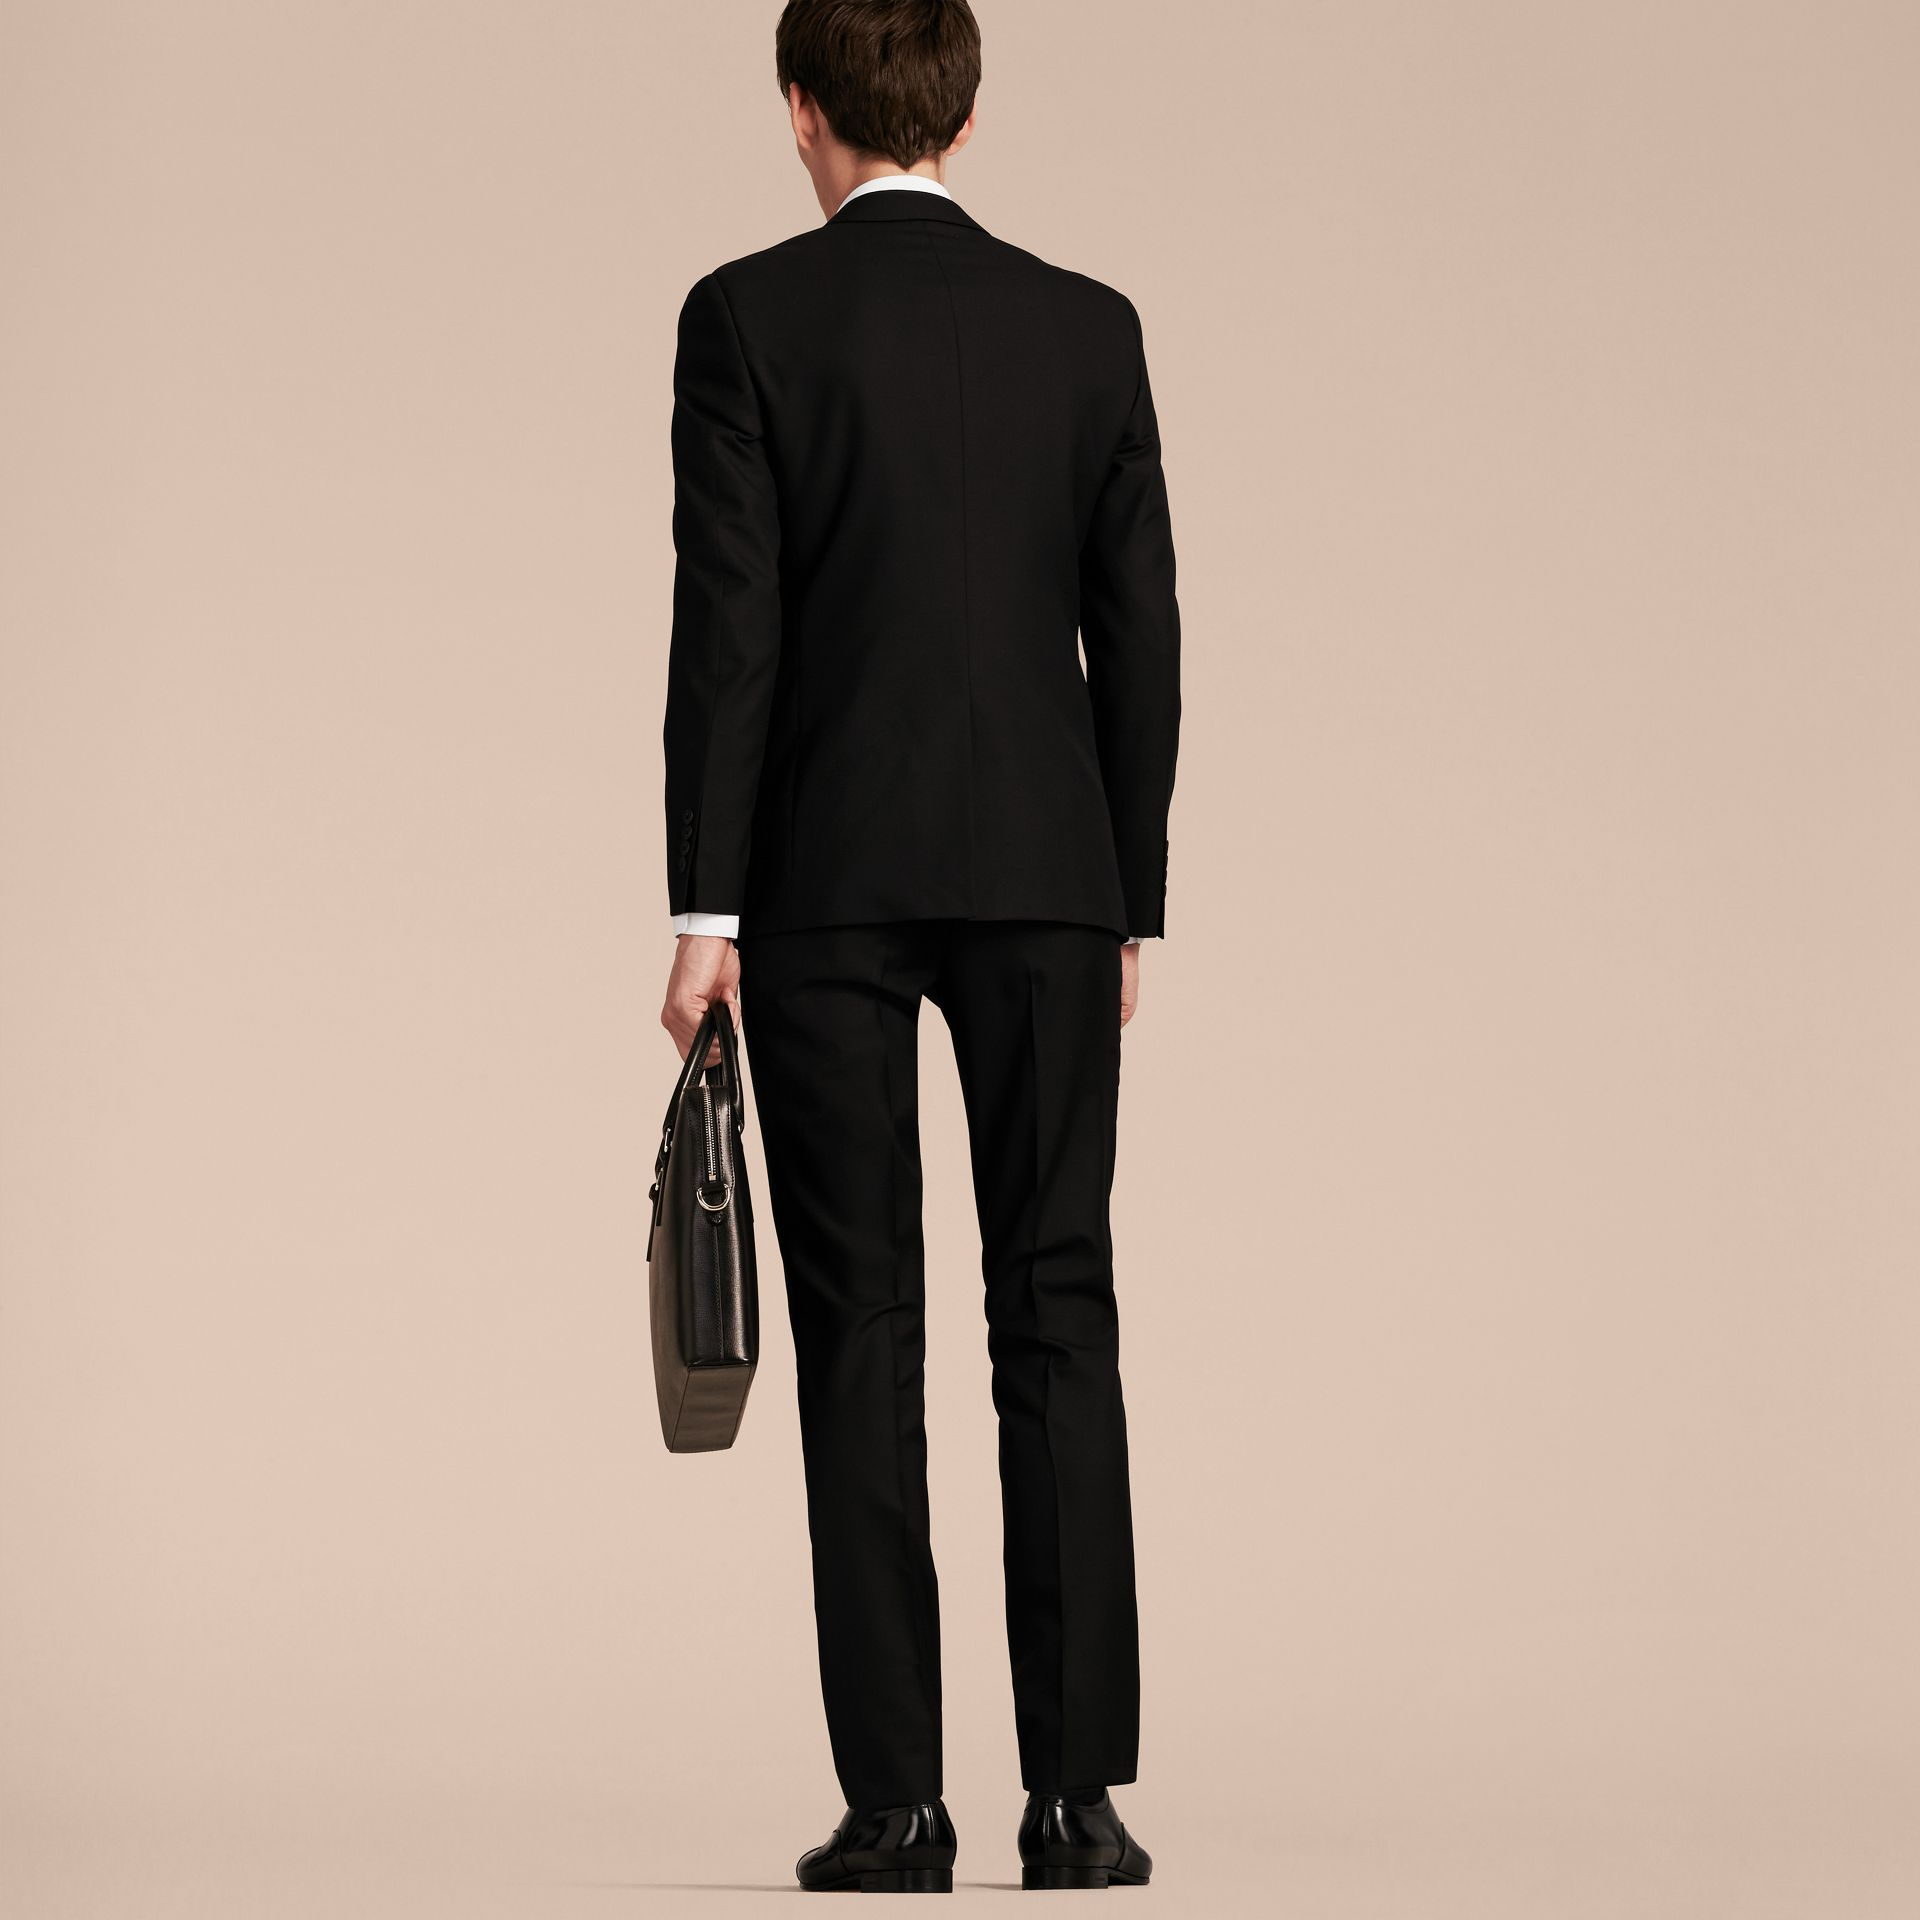 Black Slim Fit Wool Part-canvas Suit Black - gallery image 3